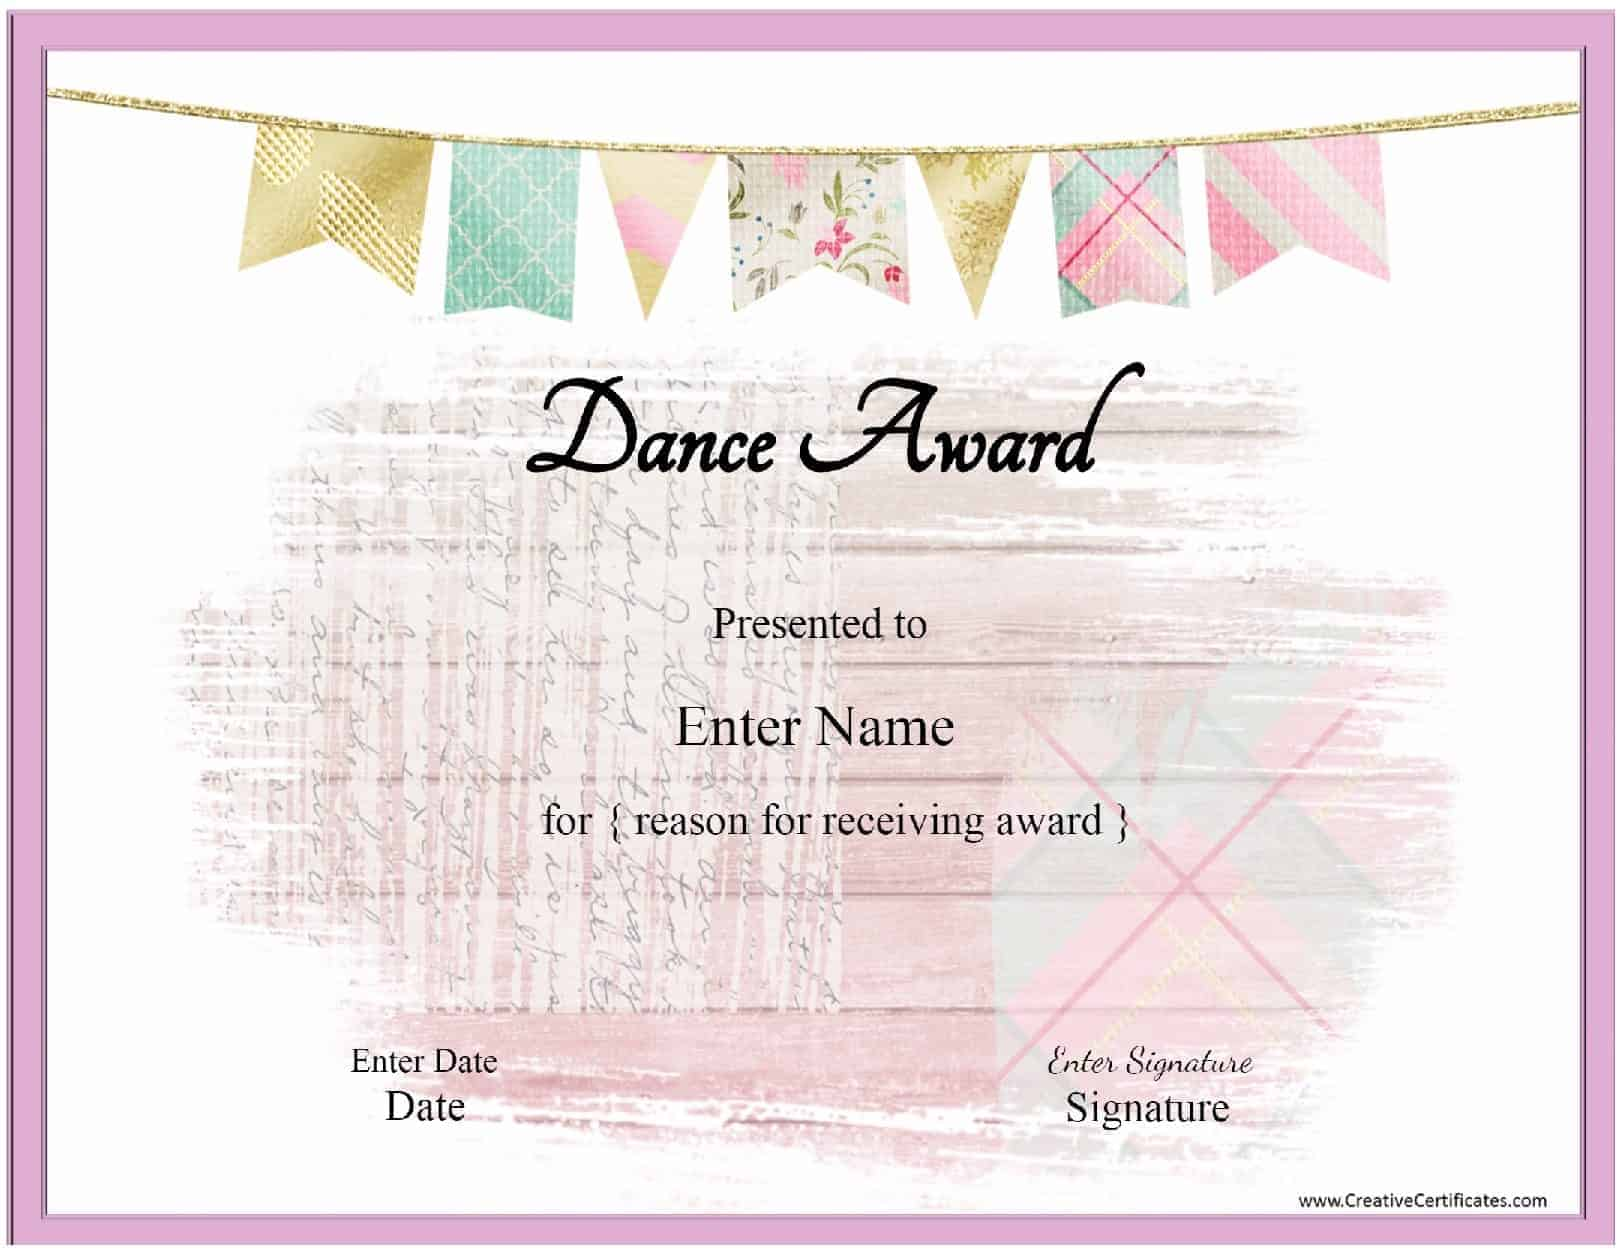 Dance award with a pink banenr and a pink frame